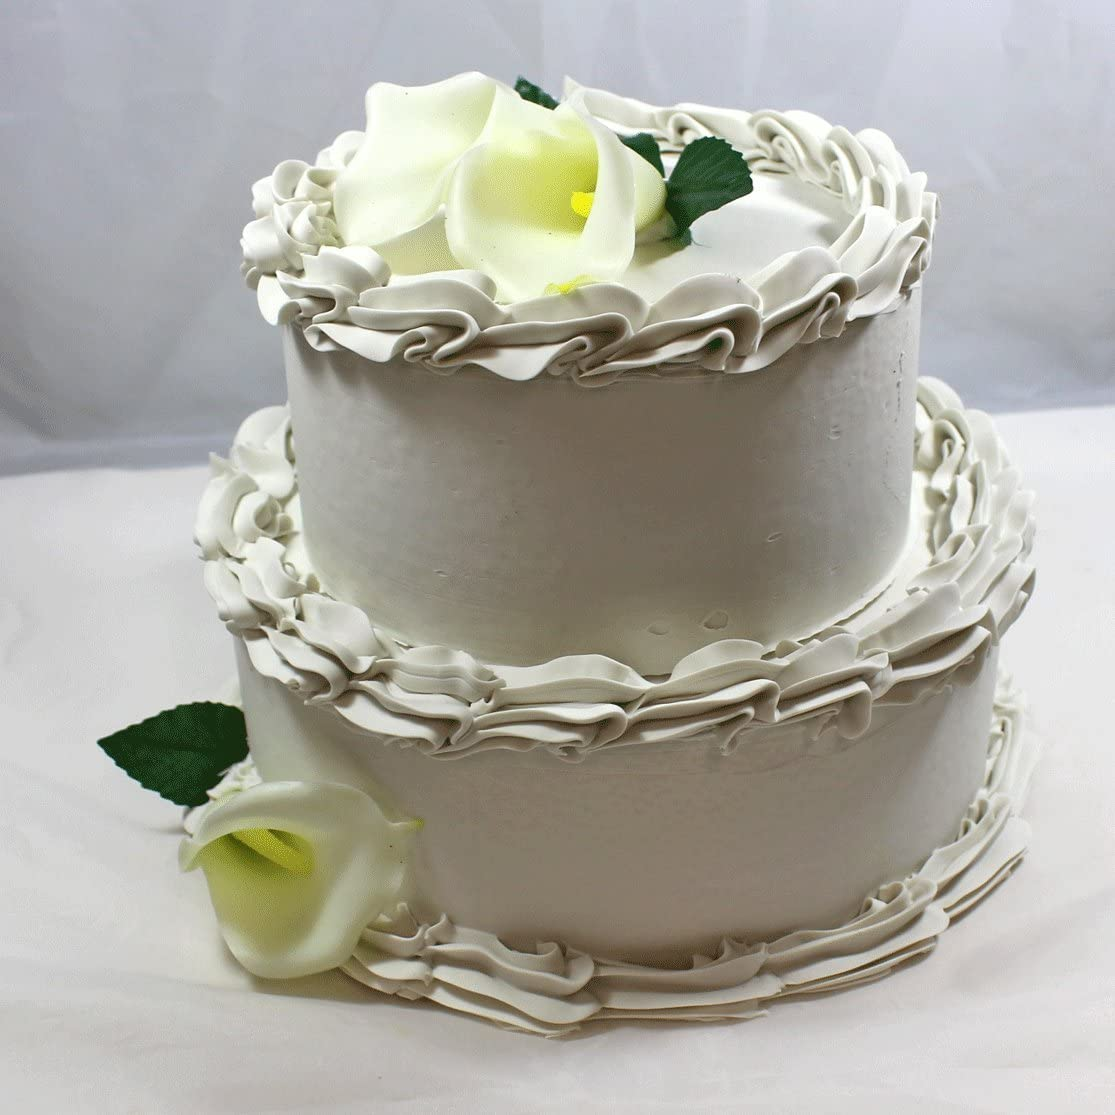 Amazon Com Just Dough It Fake 2 Tier Wedding Cake Home Kitchen